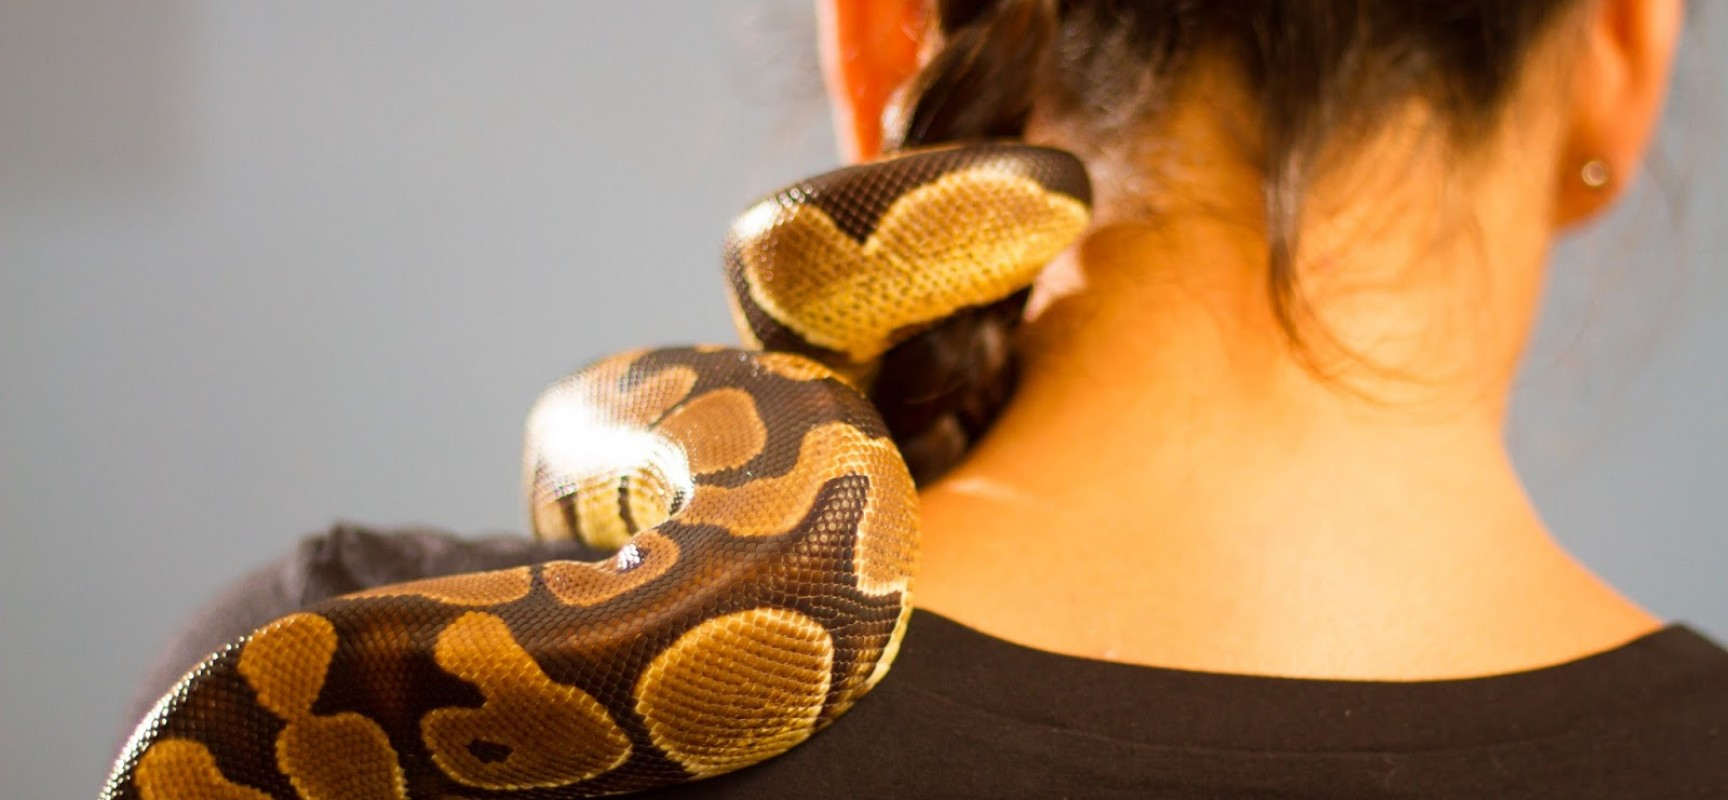 Things you need to know before becoming a pet snake owner